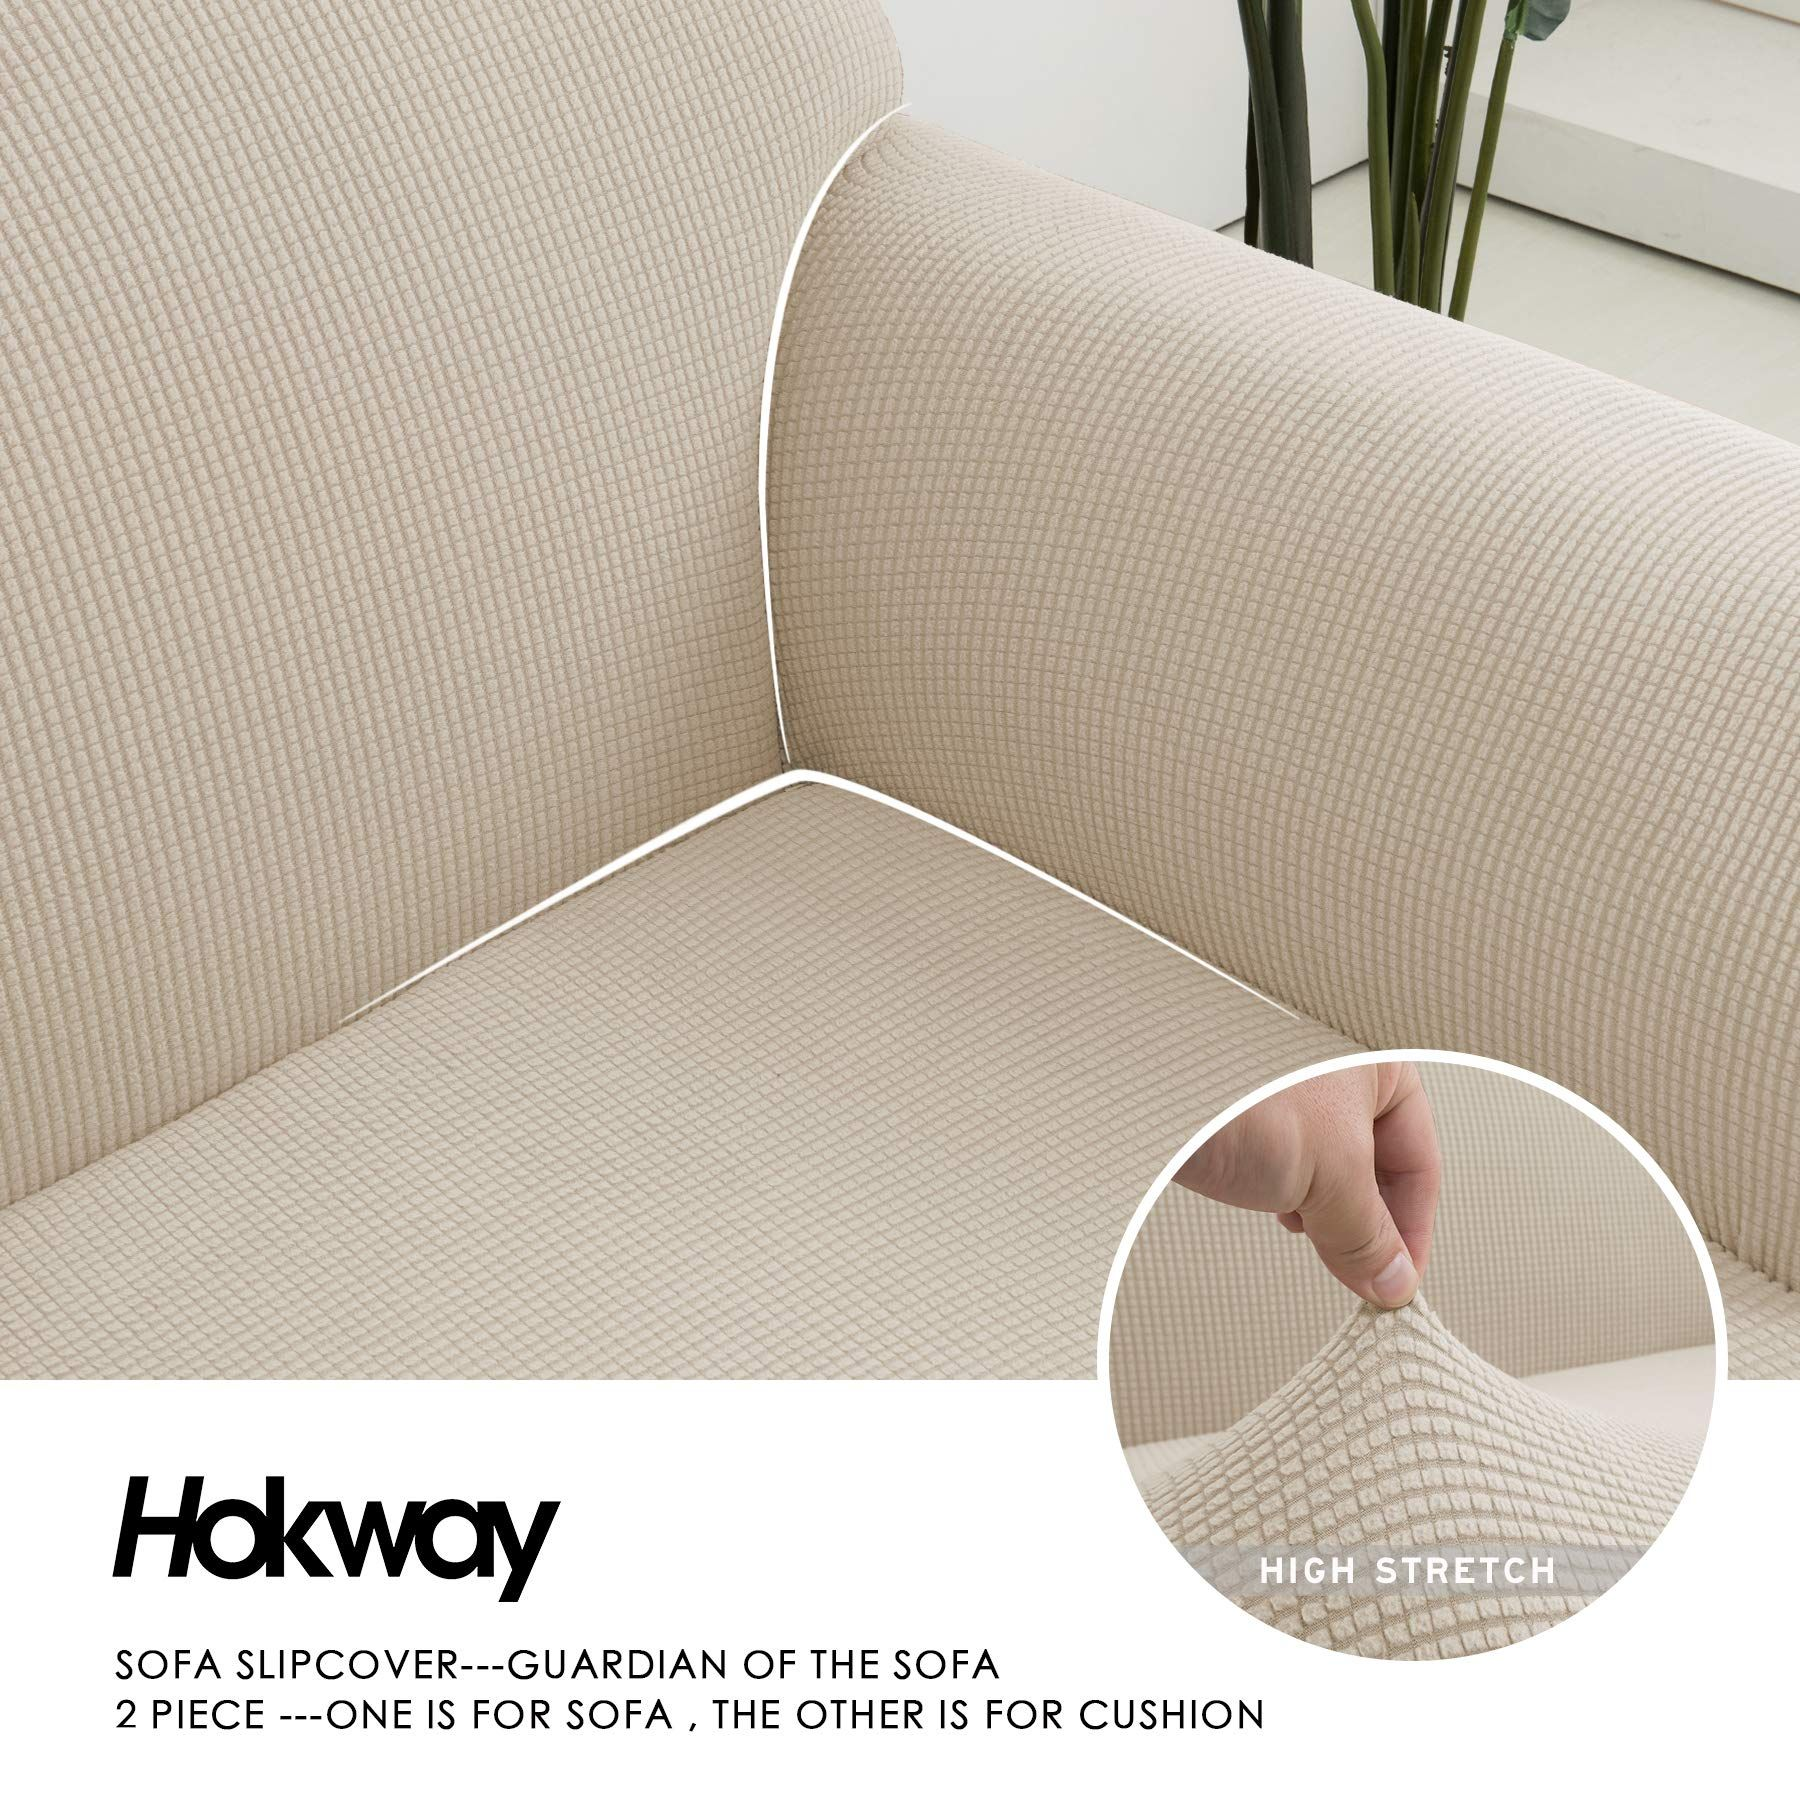 Fabulous Hokway 2Piece Stretch Sofa Slipcover Spandex Couch Cover Ncnpc Chair Design For Home Ncnpcorg